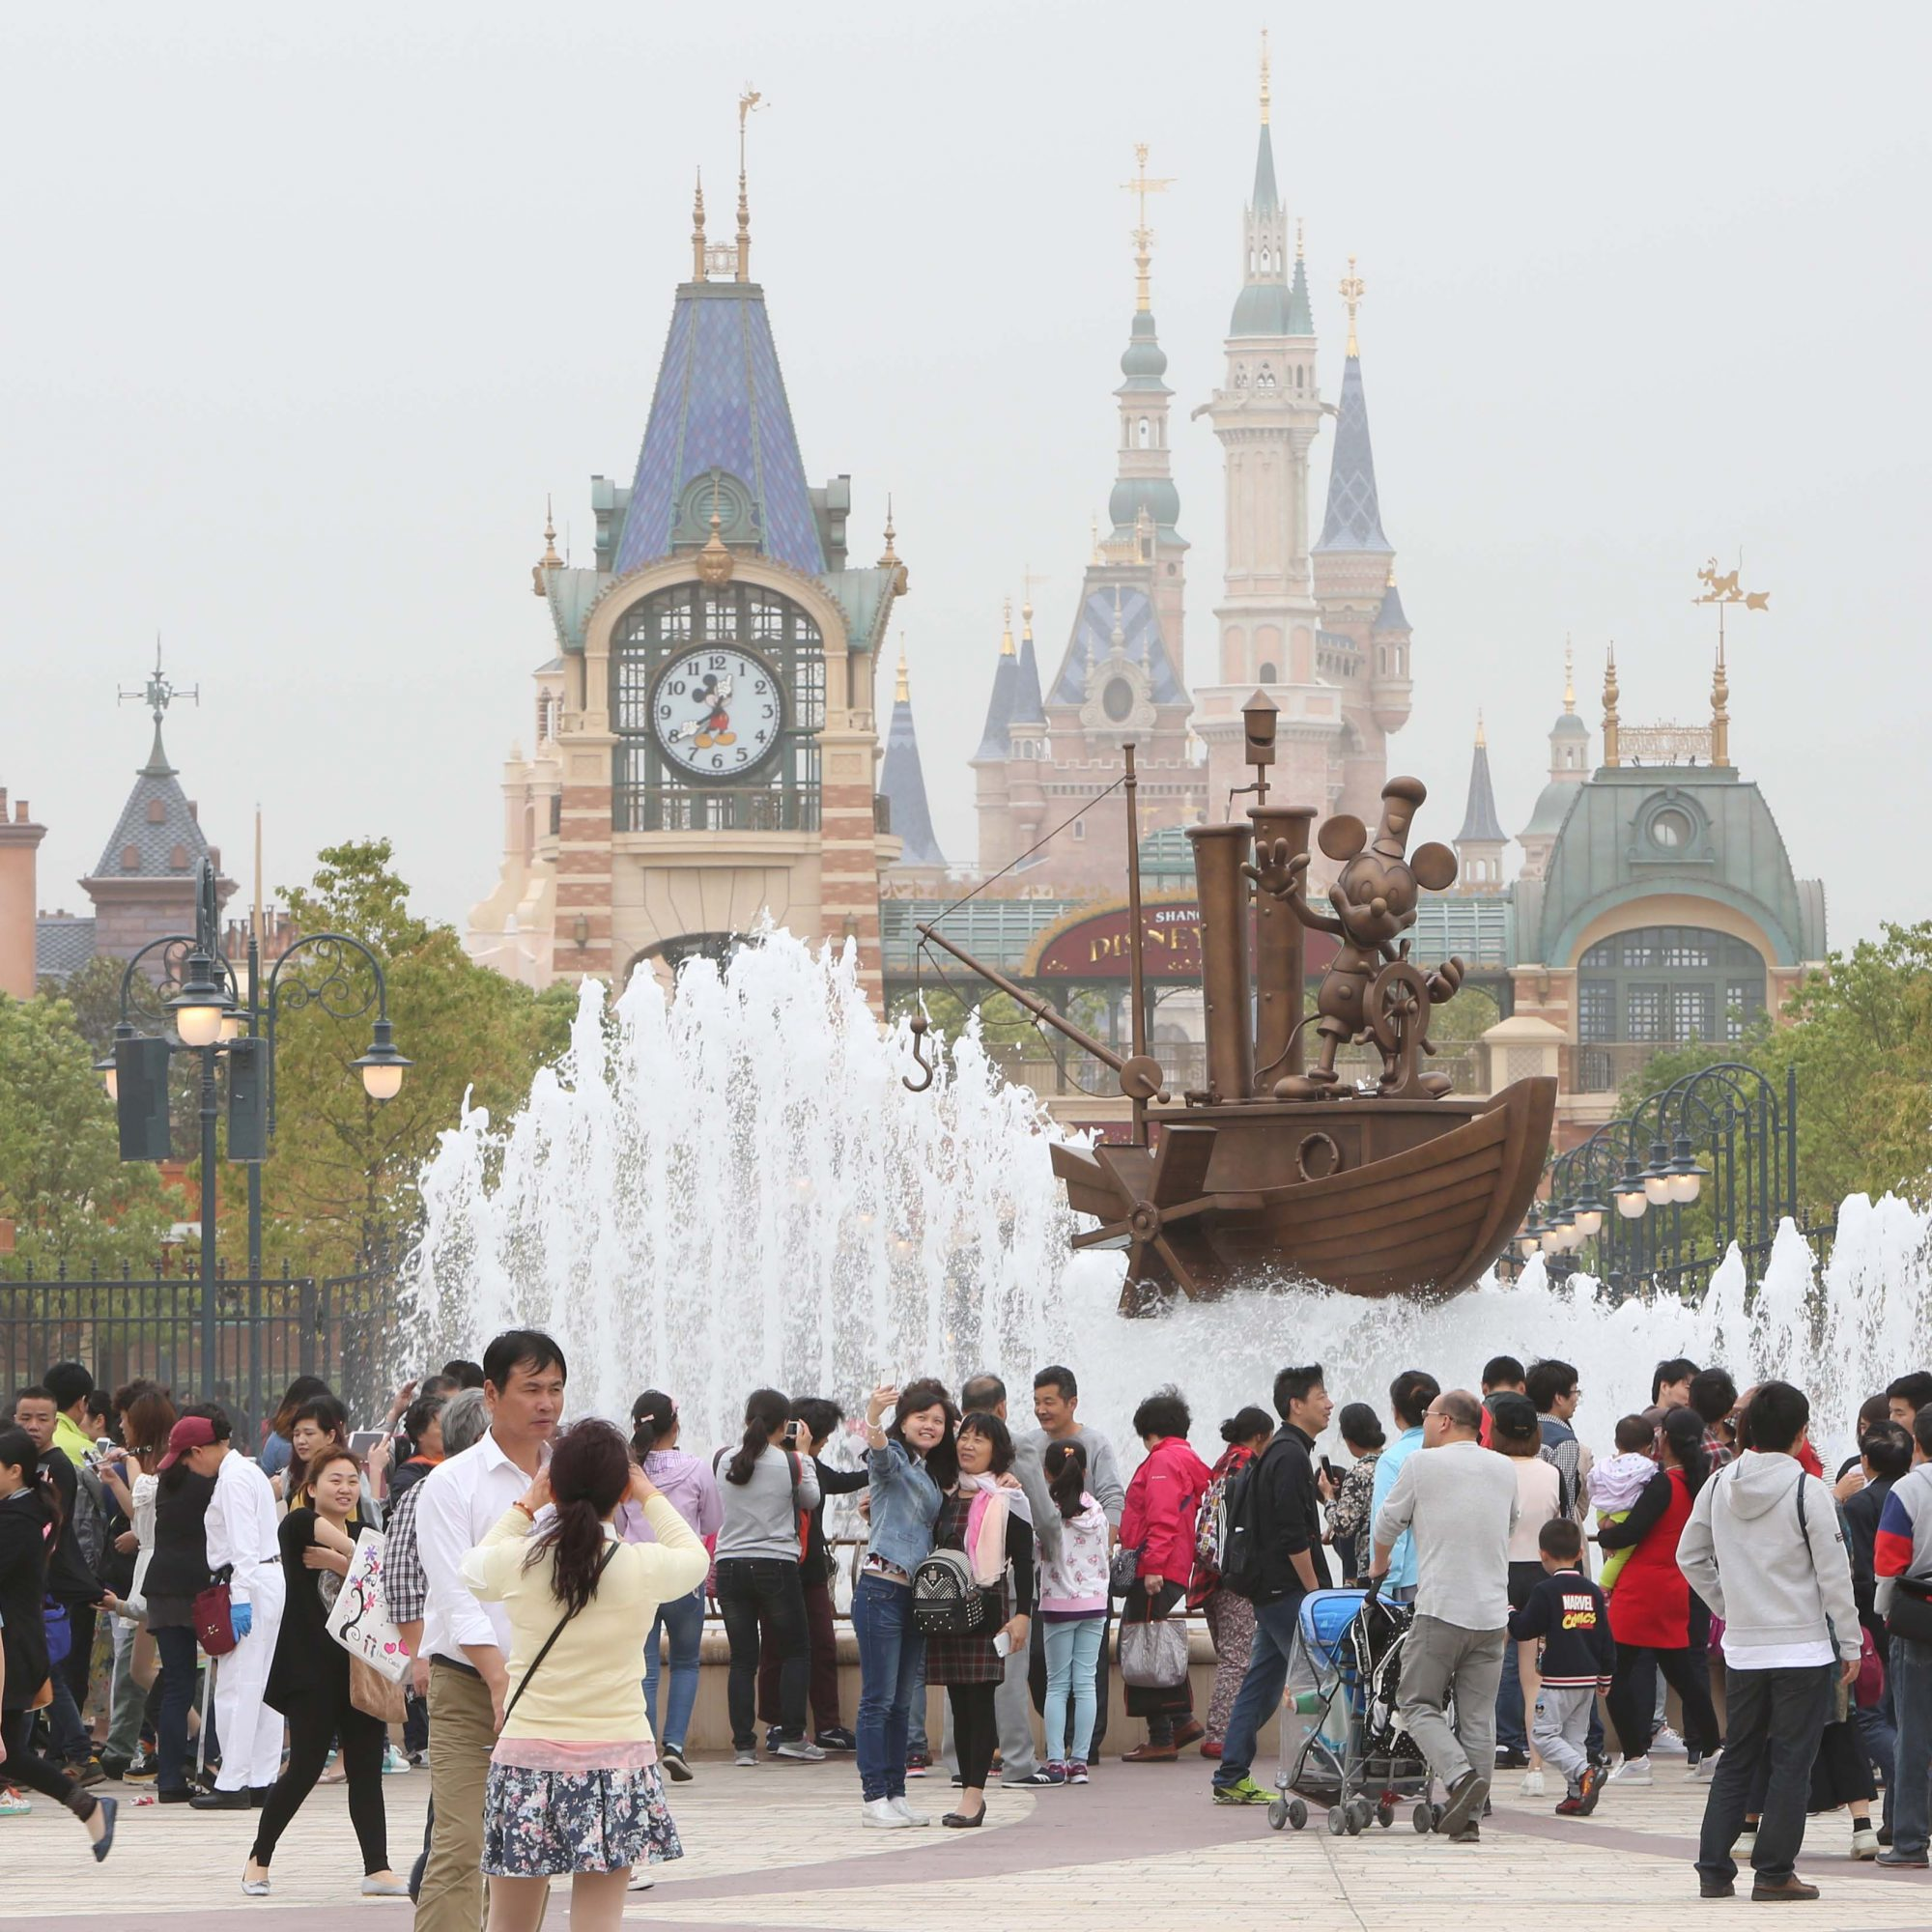 Shanghai Disneyland Hasn't Even Opened Yet and People Are Already Mad About the Food Prices